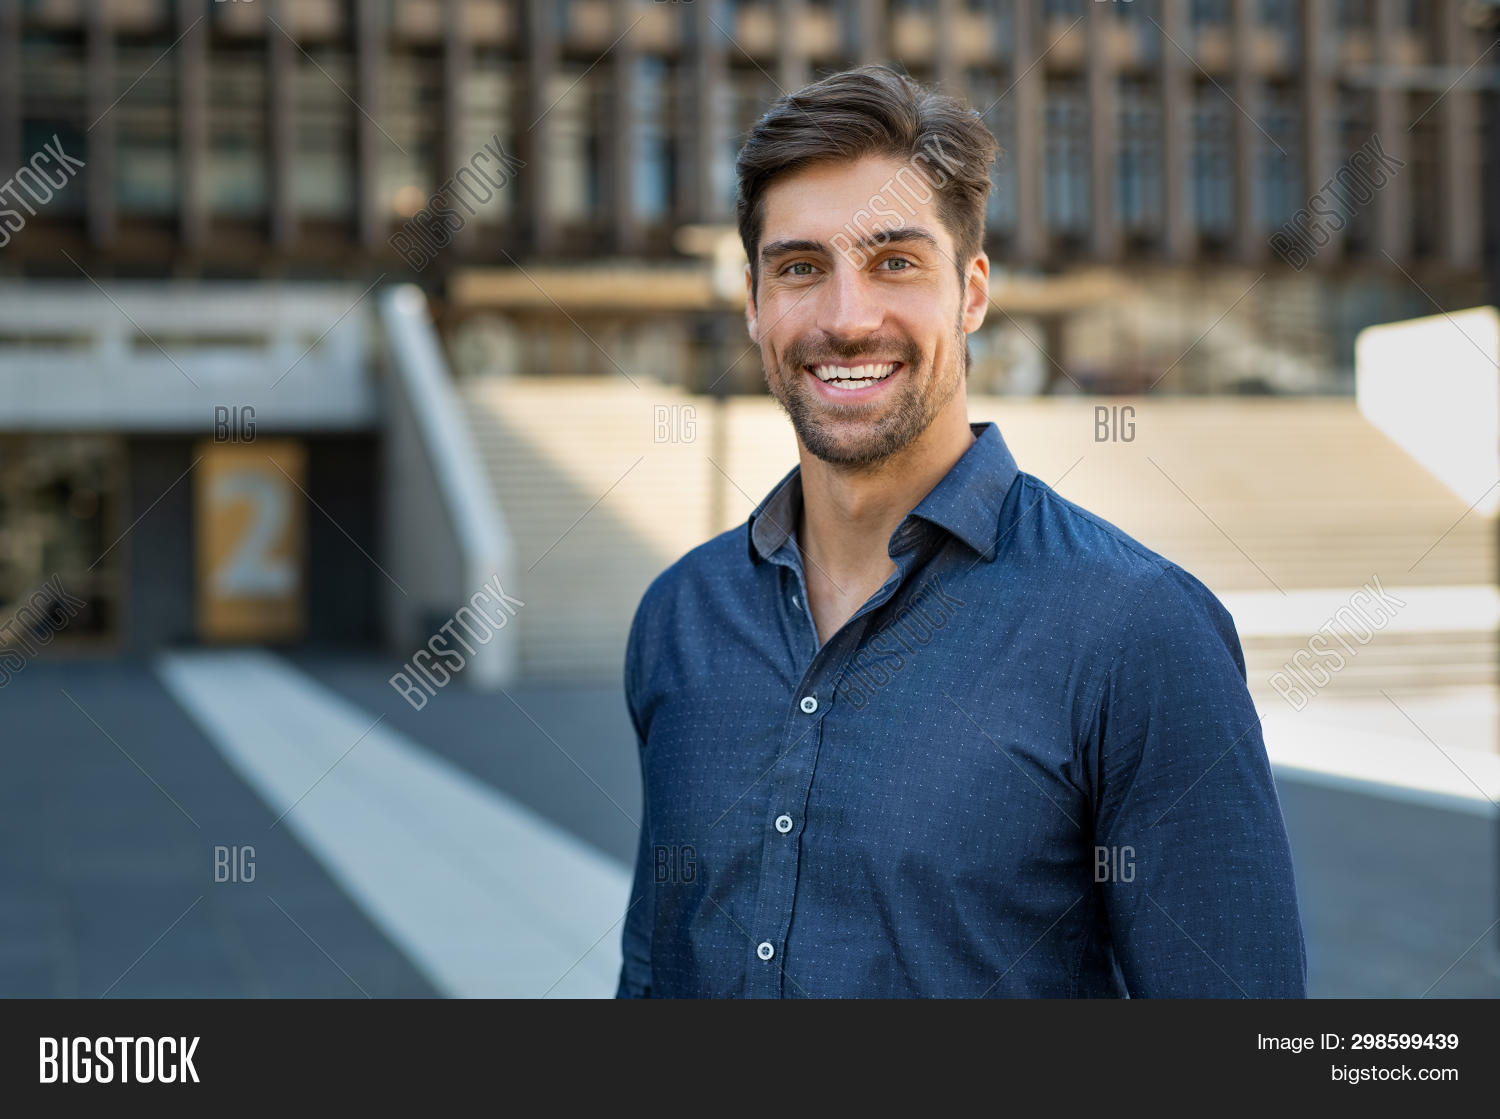 Portrait of happy young man in casual clothing looking at camera outdoor. Smiling man with beard feeling confident. Successful business man in city street.